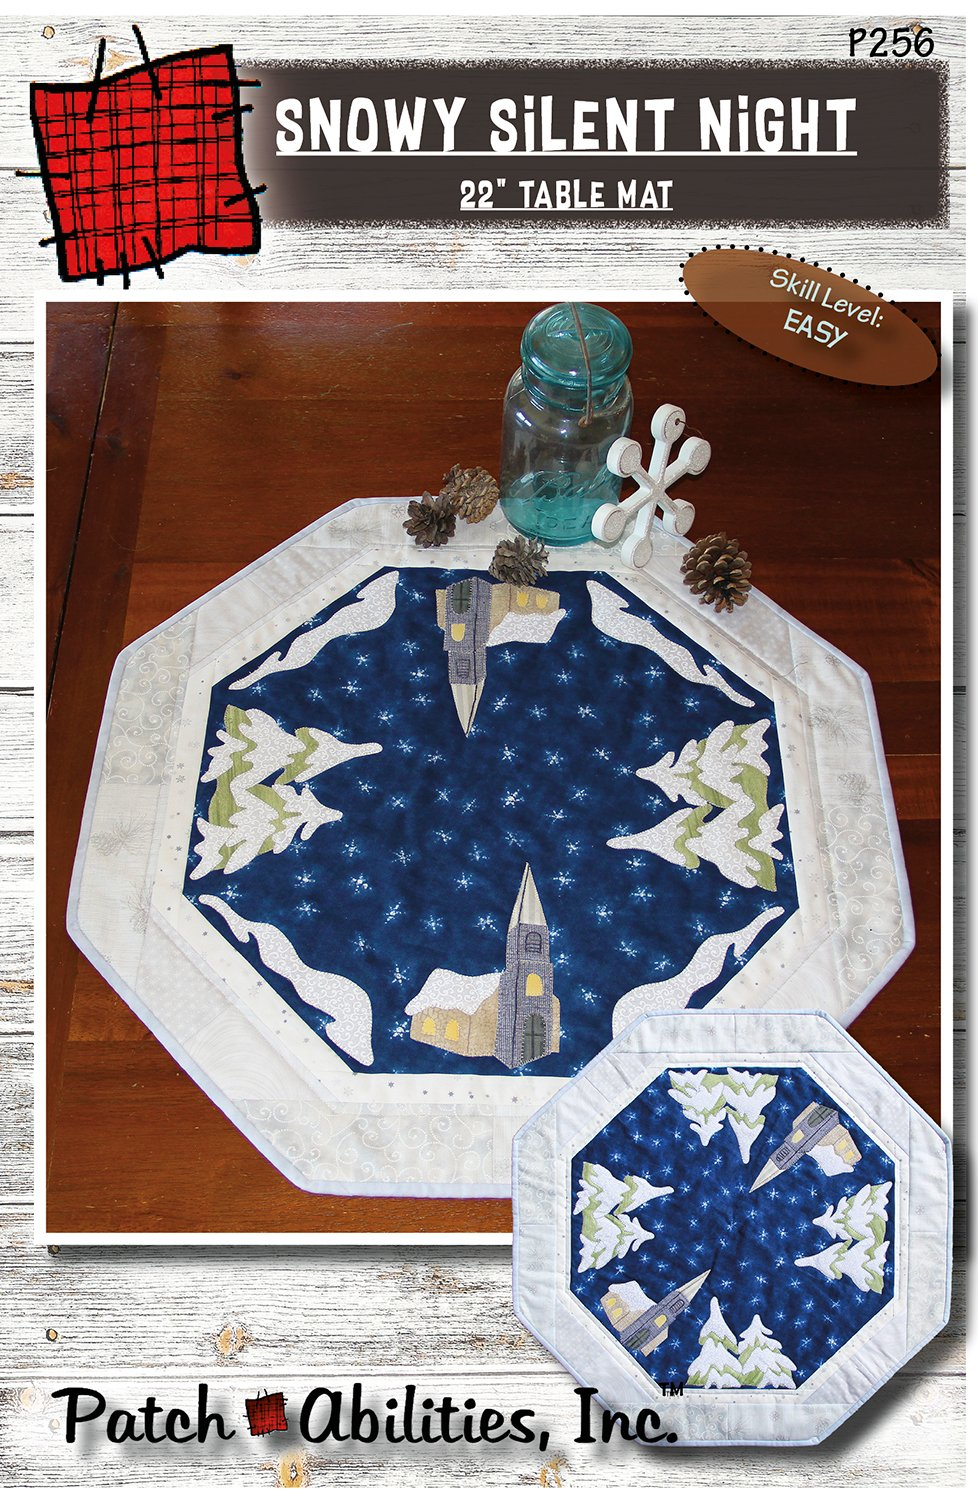 P256 Snowy Silent Night Table Mat